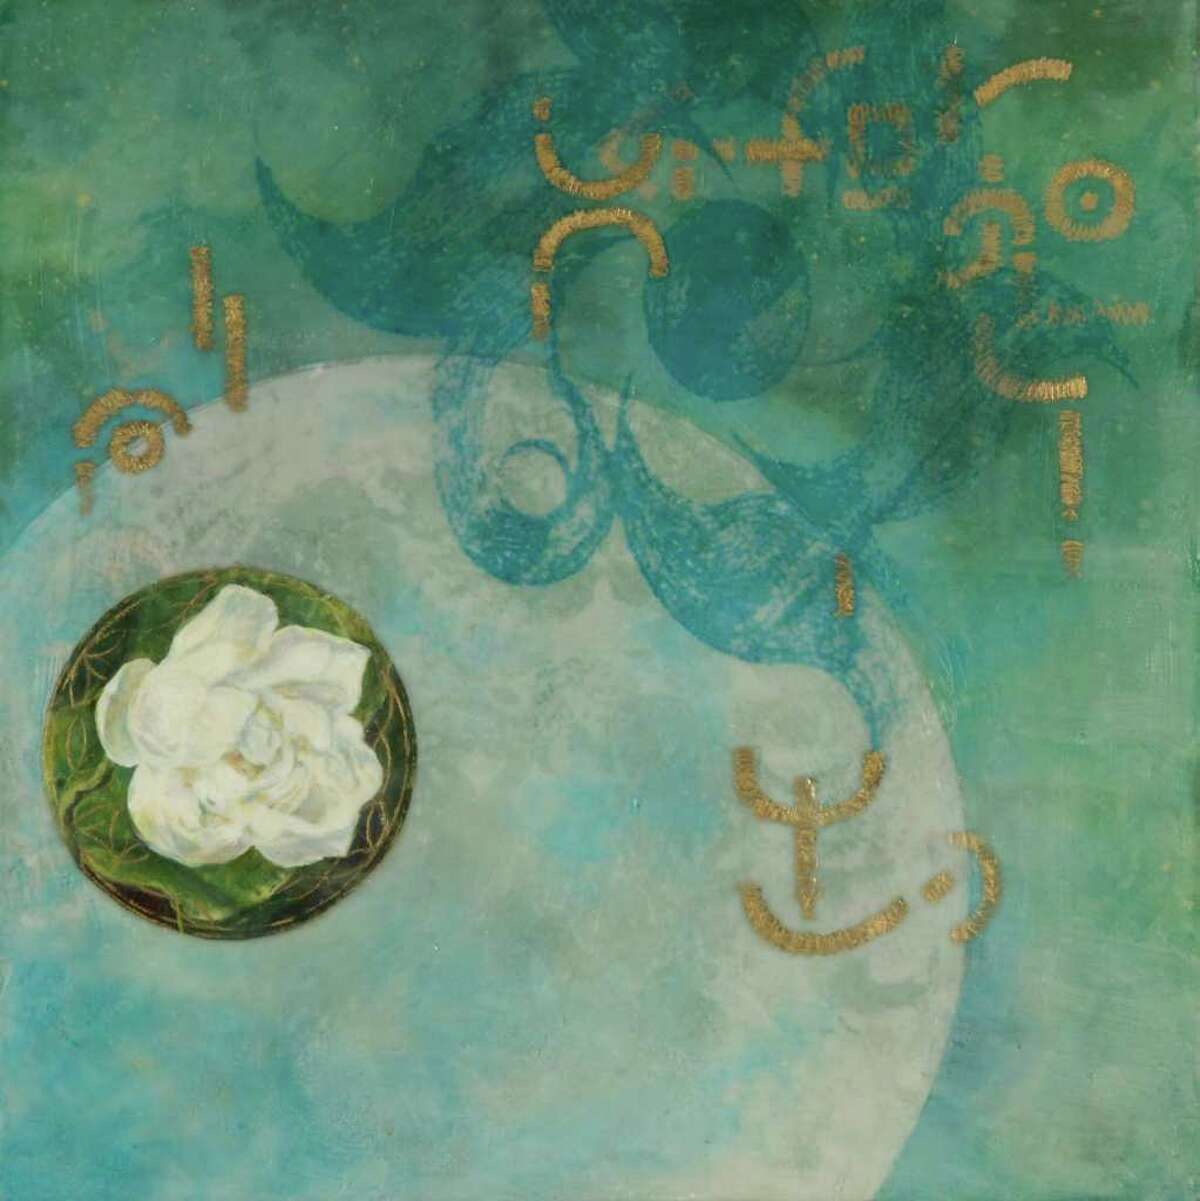 """Martha Robinson's encaustic painting """"Lotus Language I"""" will be included in the upcoming exhibition """"Luminsity@180º"""" at the Flinn Gallery."""